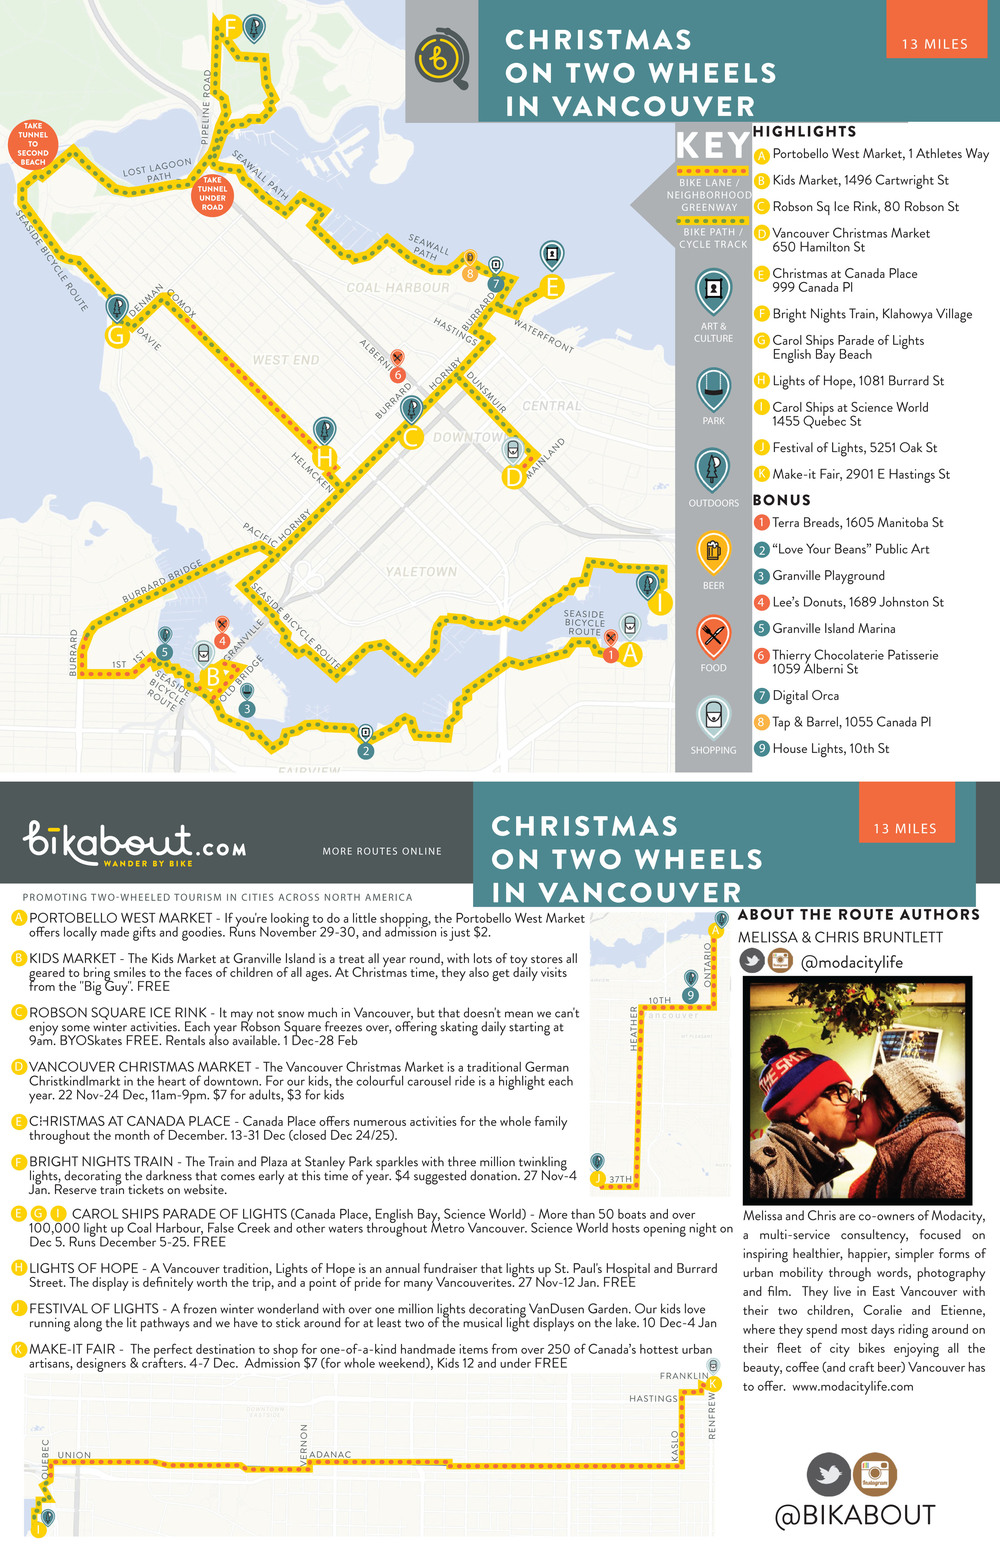 Bikabout-Vancouver-Christmas-on-two-wheels